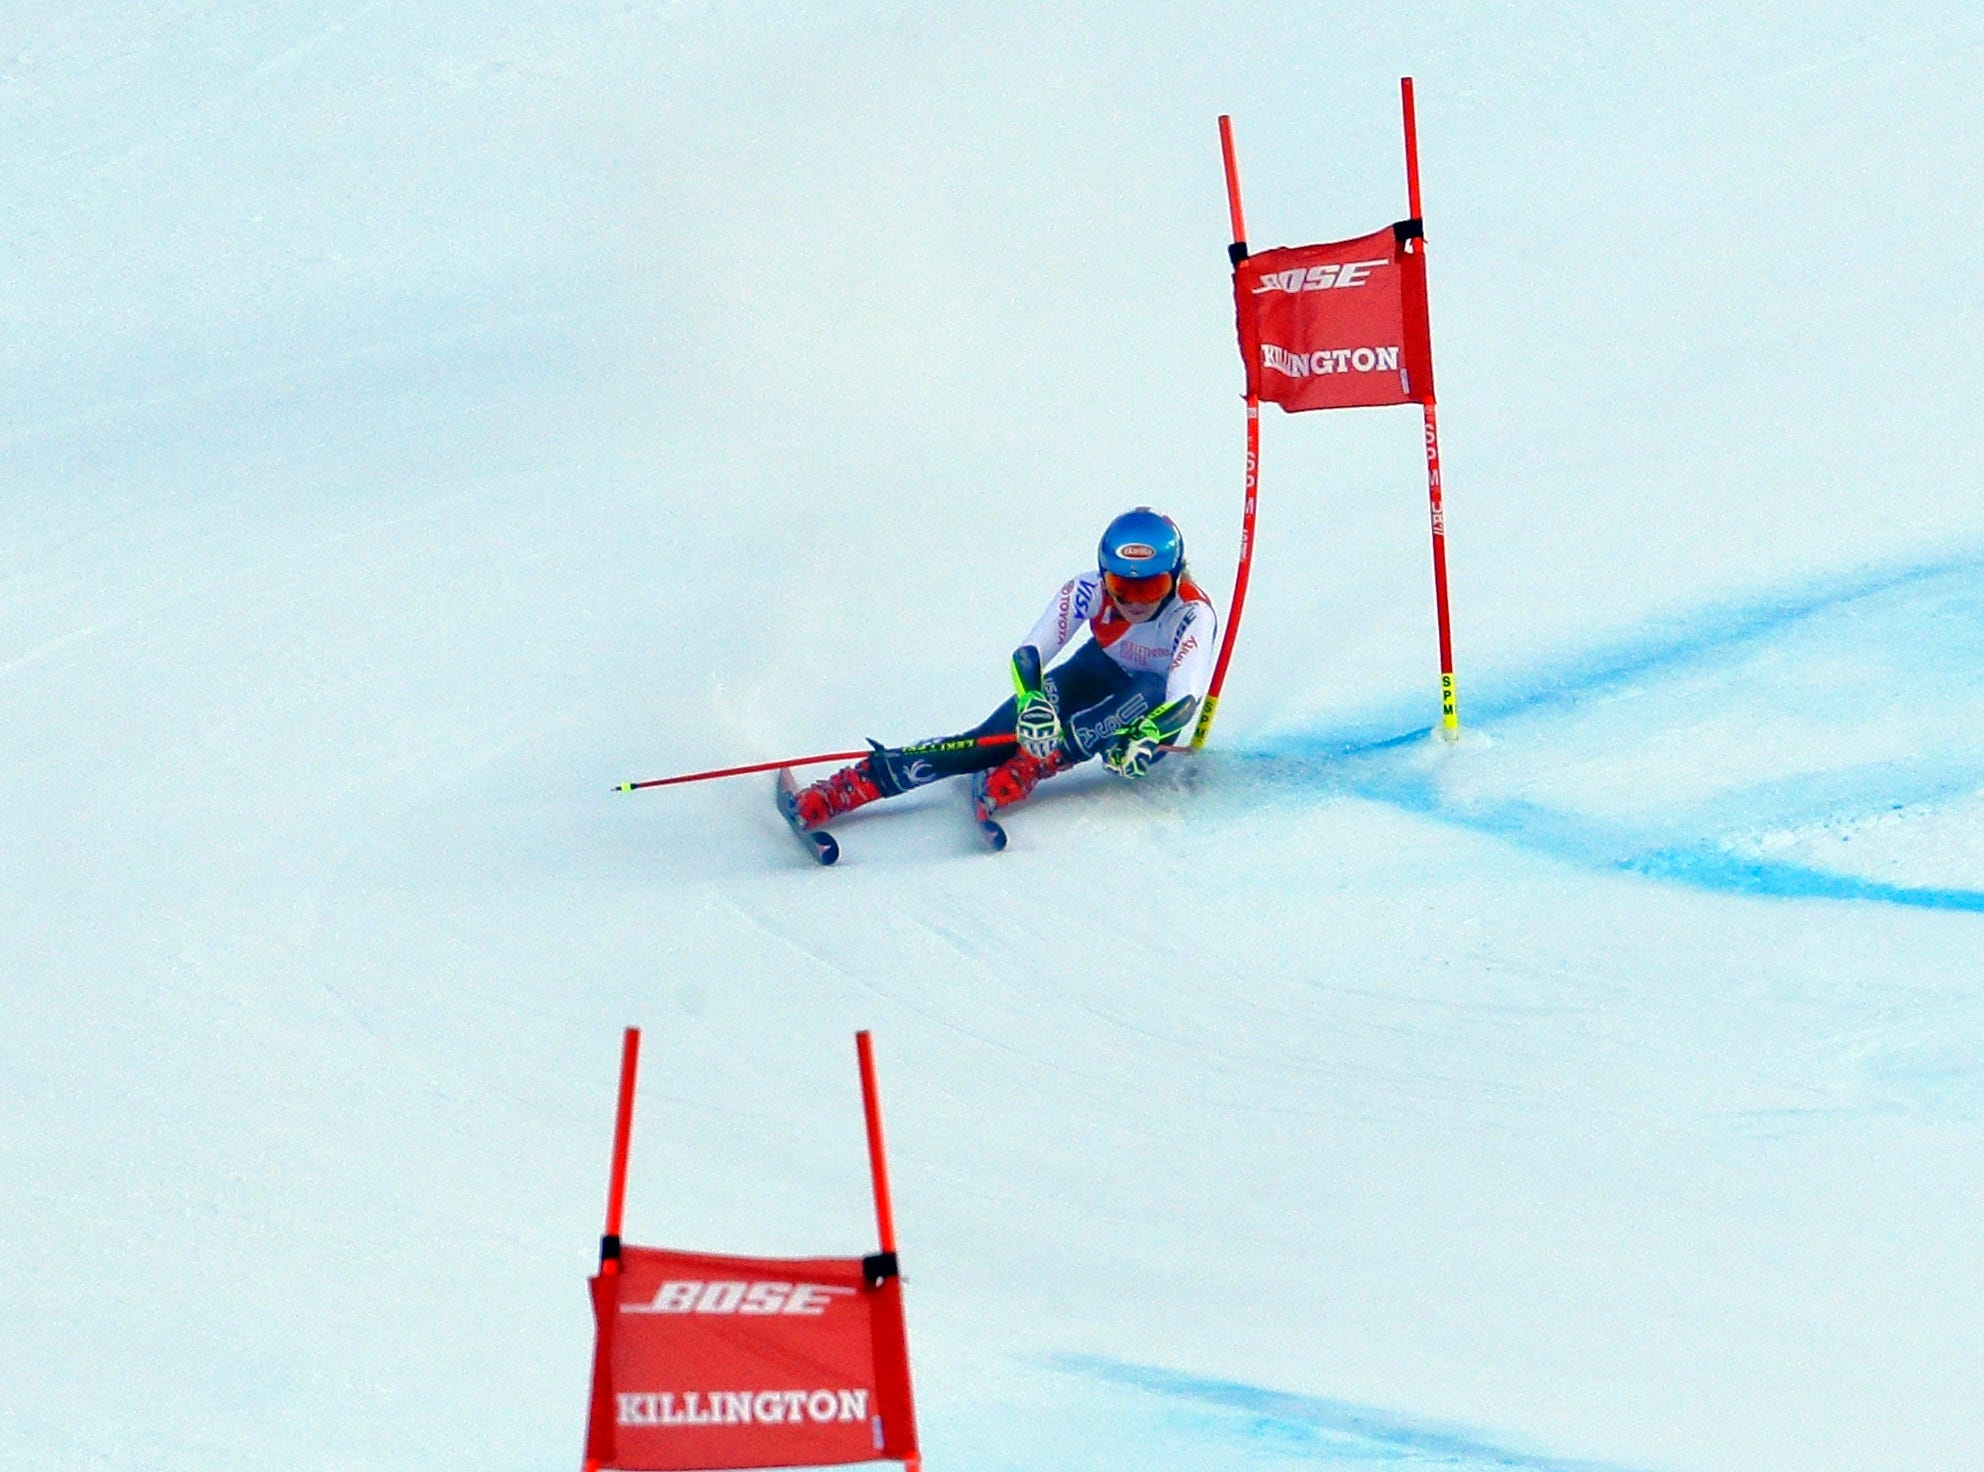 United States' Mikaela Shiffrin competes during the second run of the alpine ski, women's World Cup giant slalom in Killington, Vt., Saturday, Nov. 24, 2018.